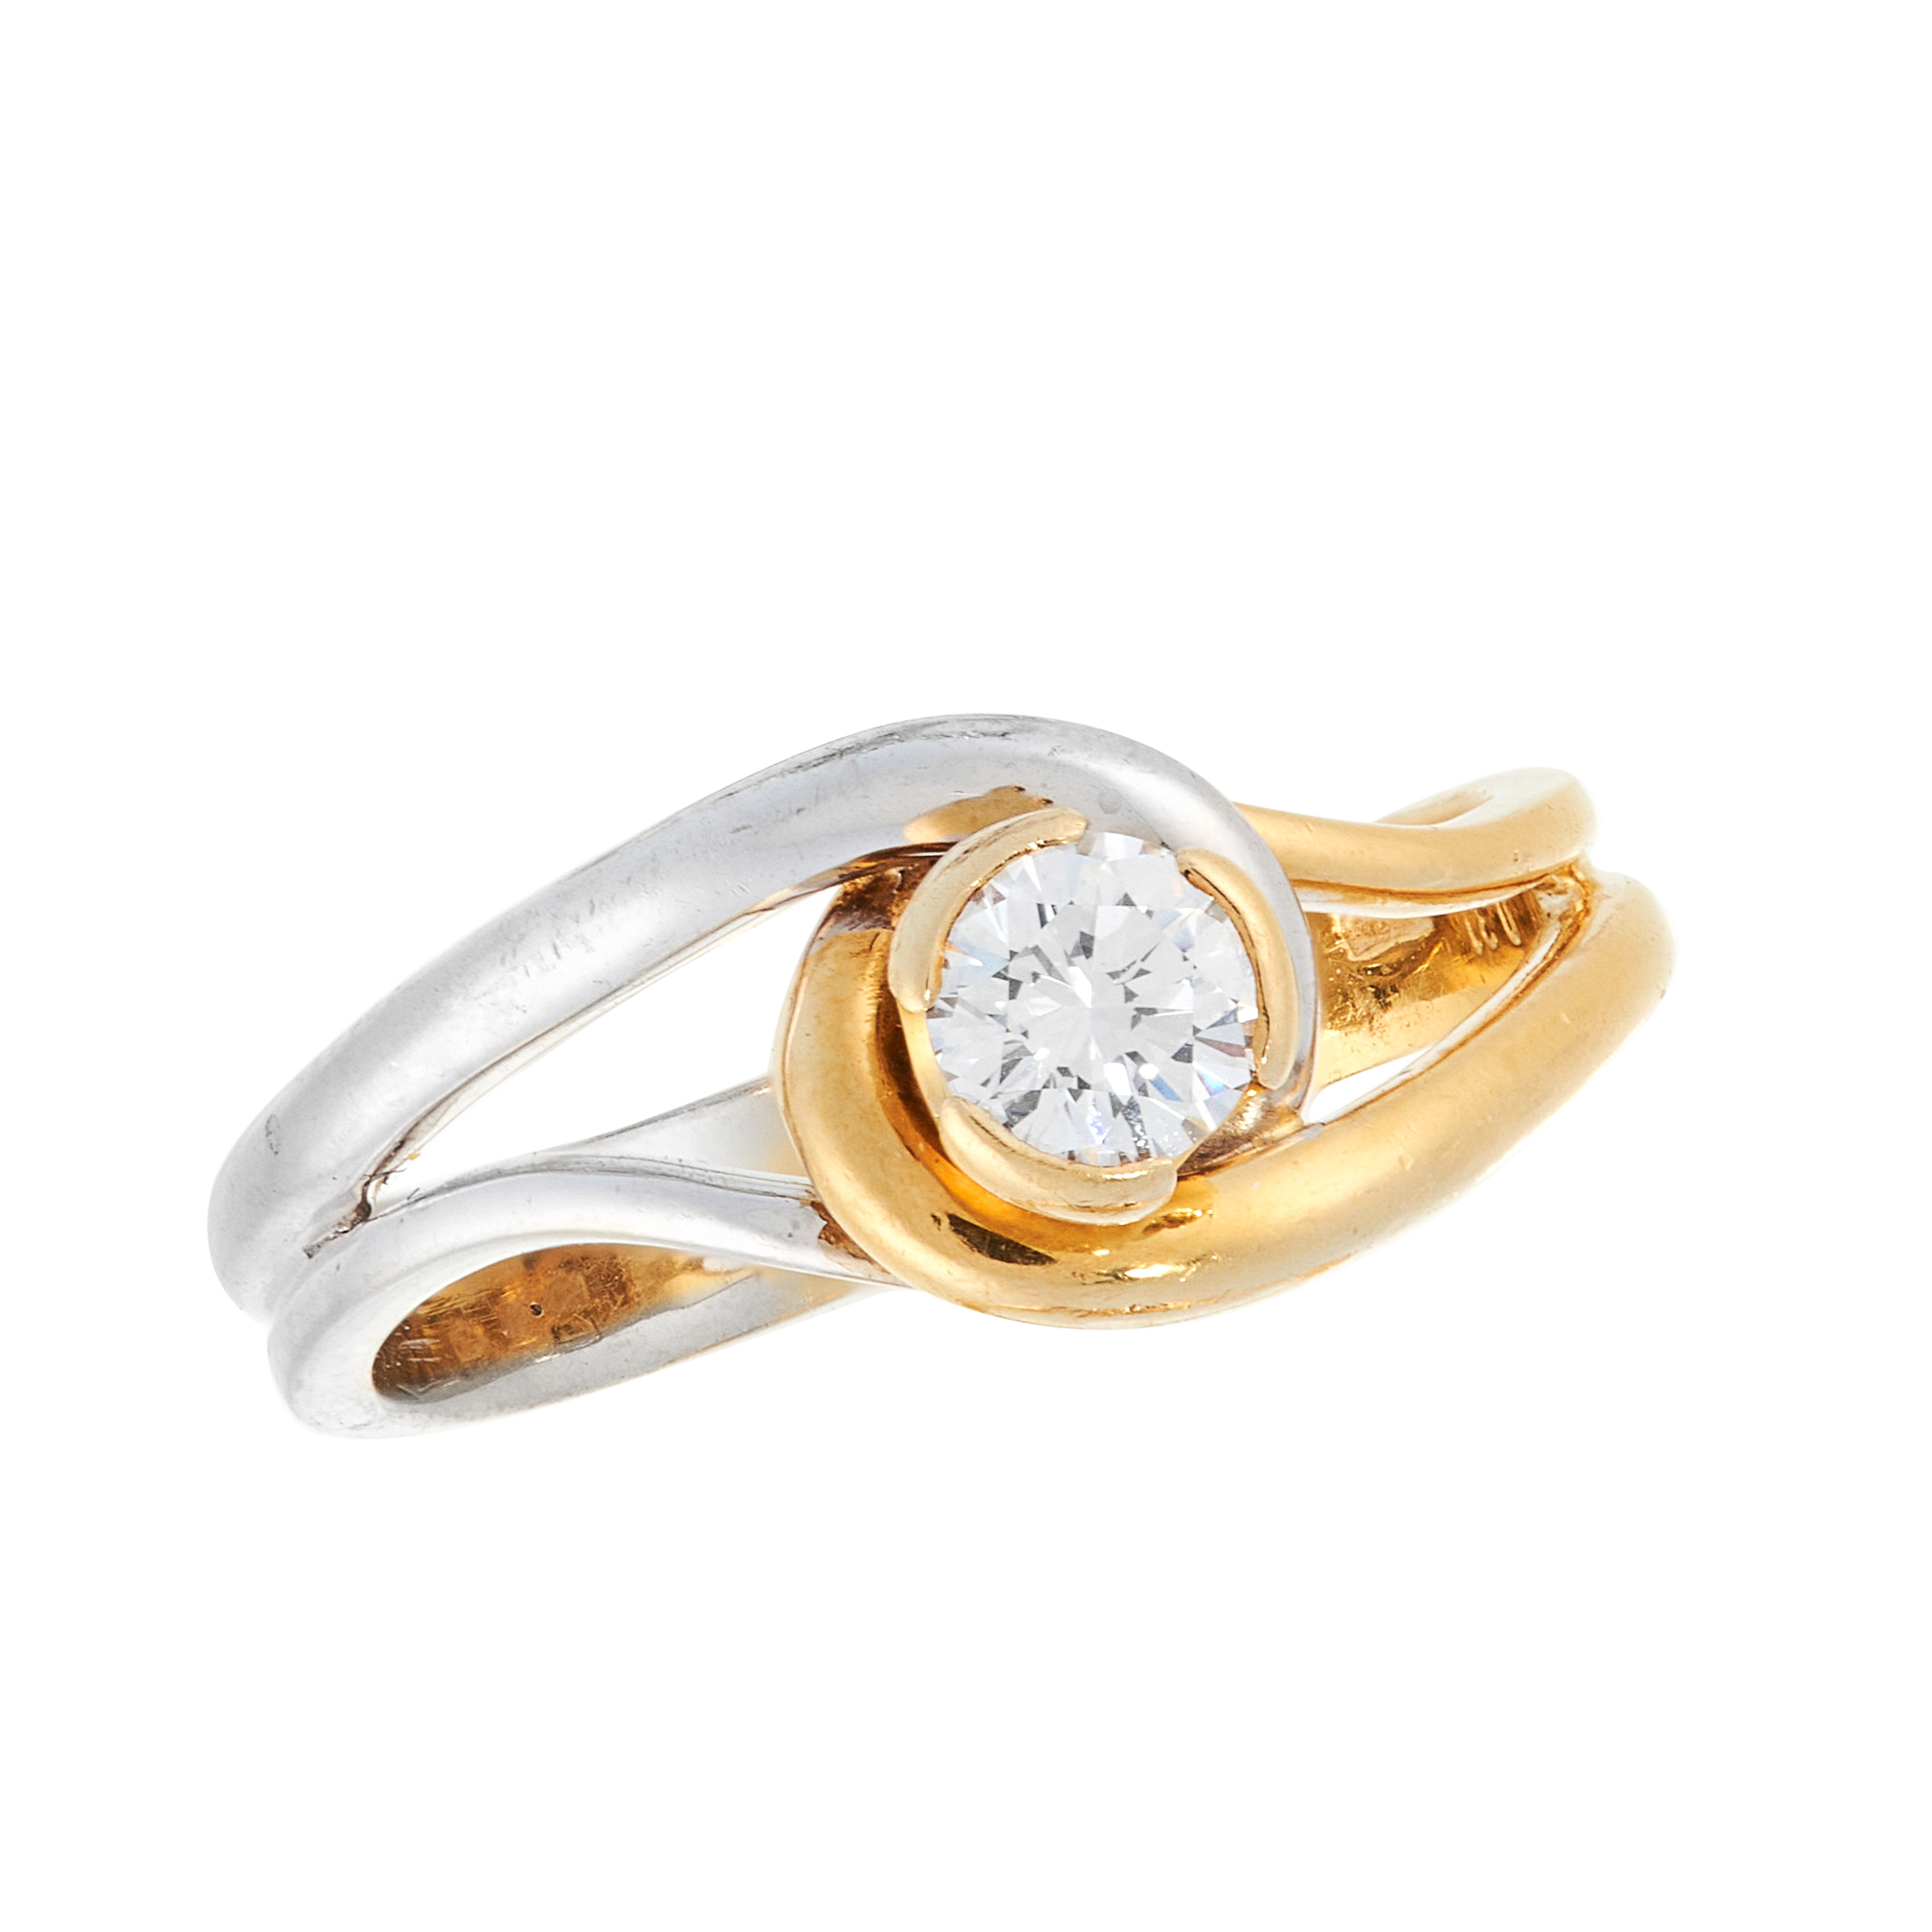 A SOLITAIRE DIAMOND DRESS RING in 18ct yellow and white gold, the band formed of interlocking loops,